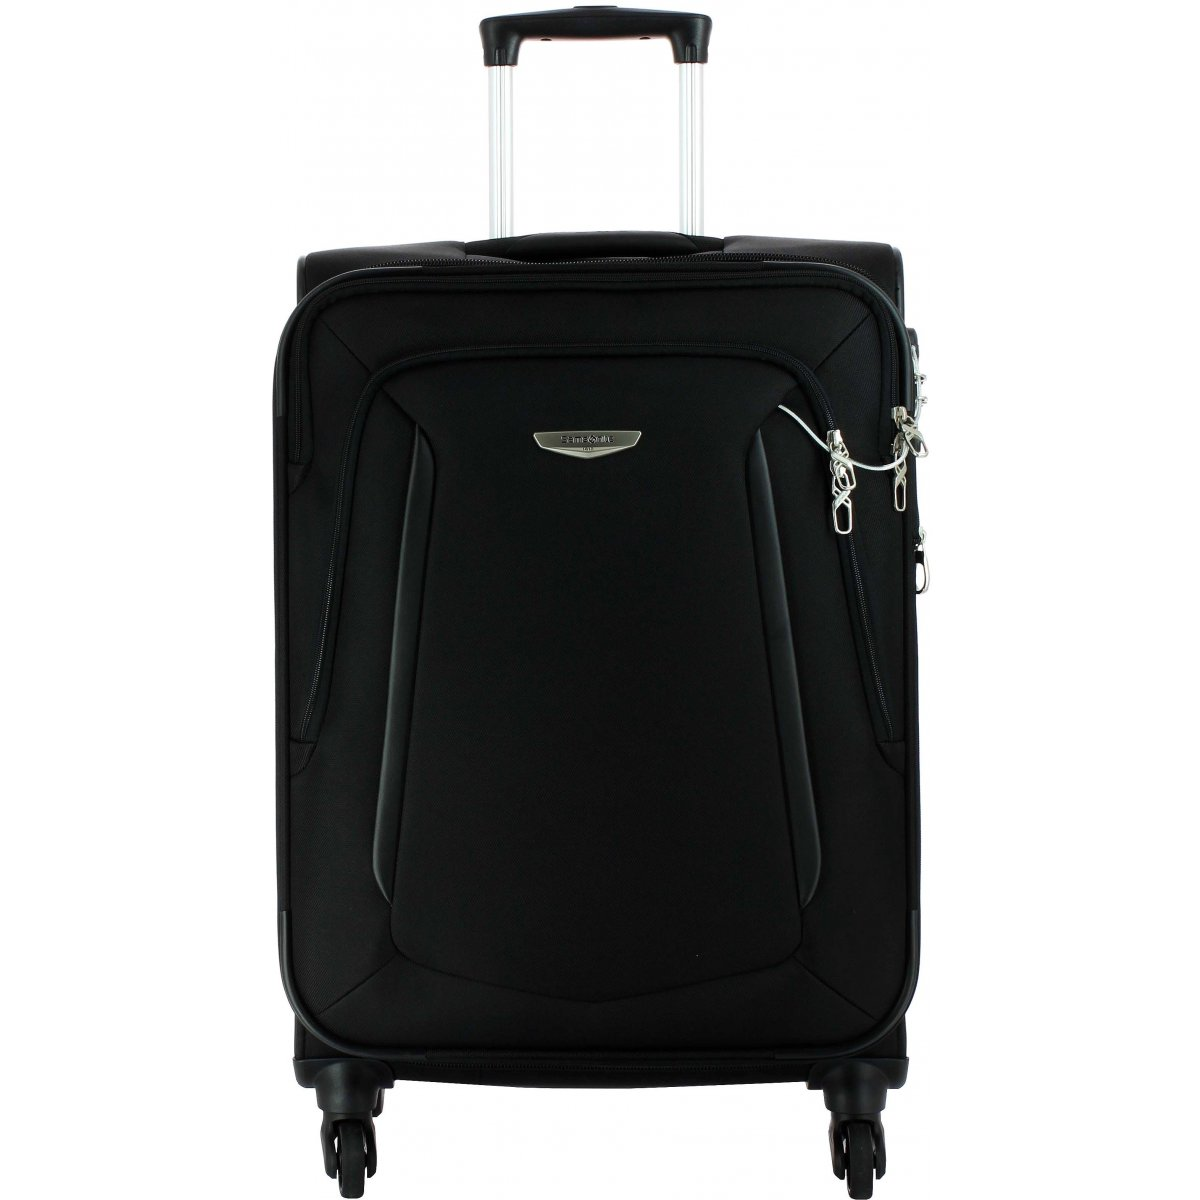 valise samsonite x 39 blade 63cm xblade91 couleur principale noir promotion. Black Bedroom Furniture Sets. Home Design Ideas